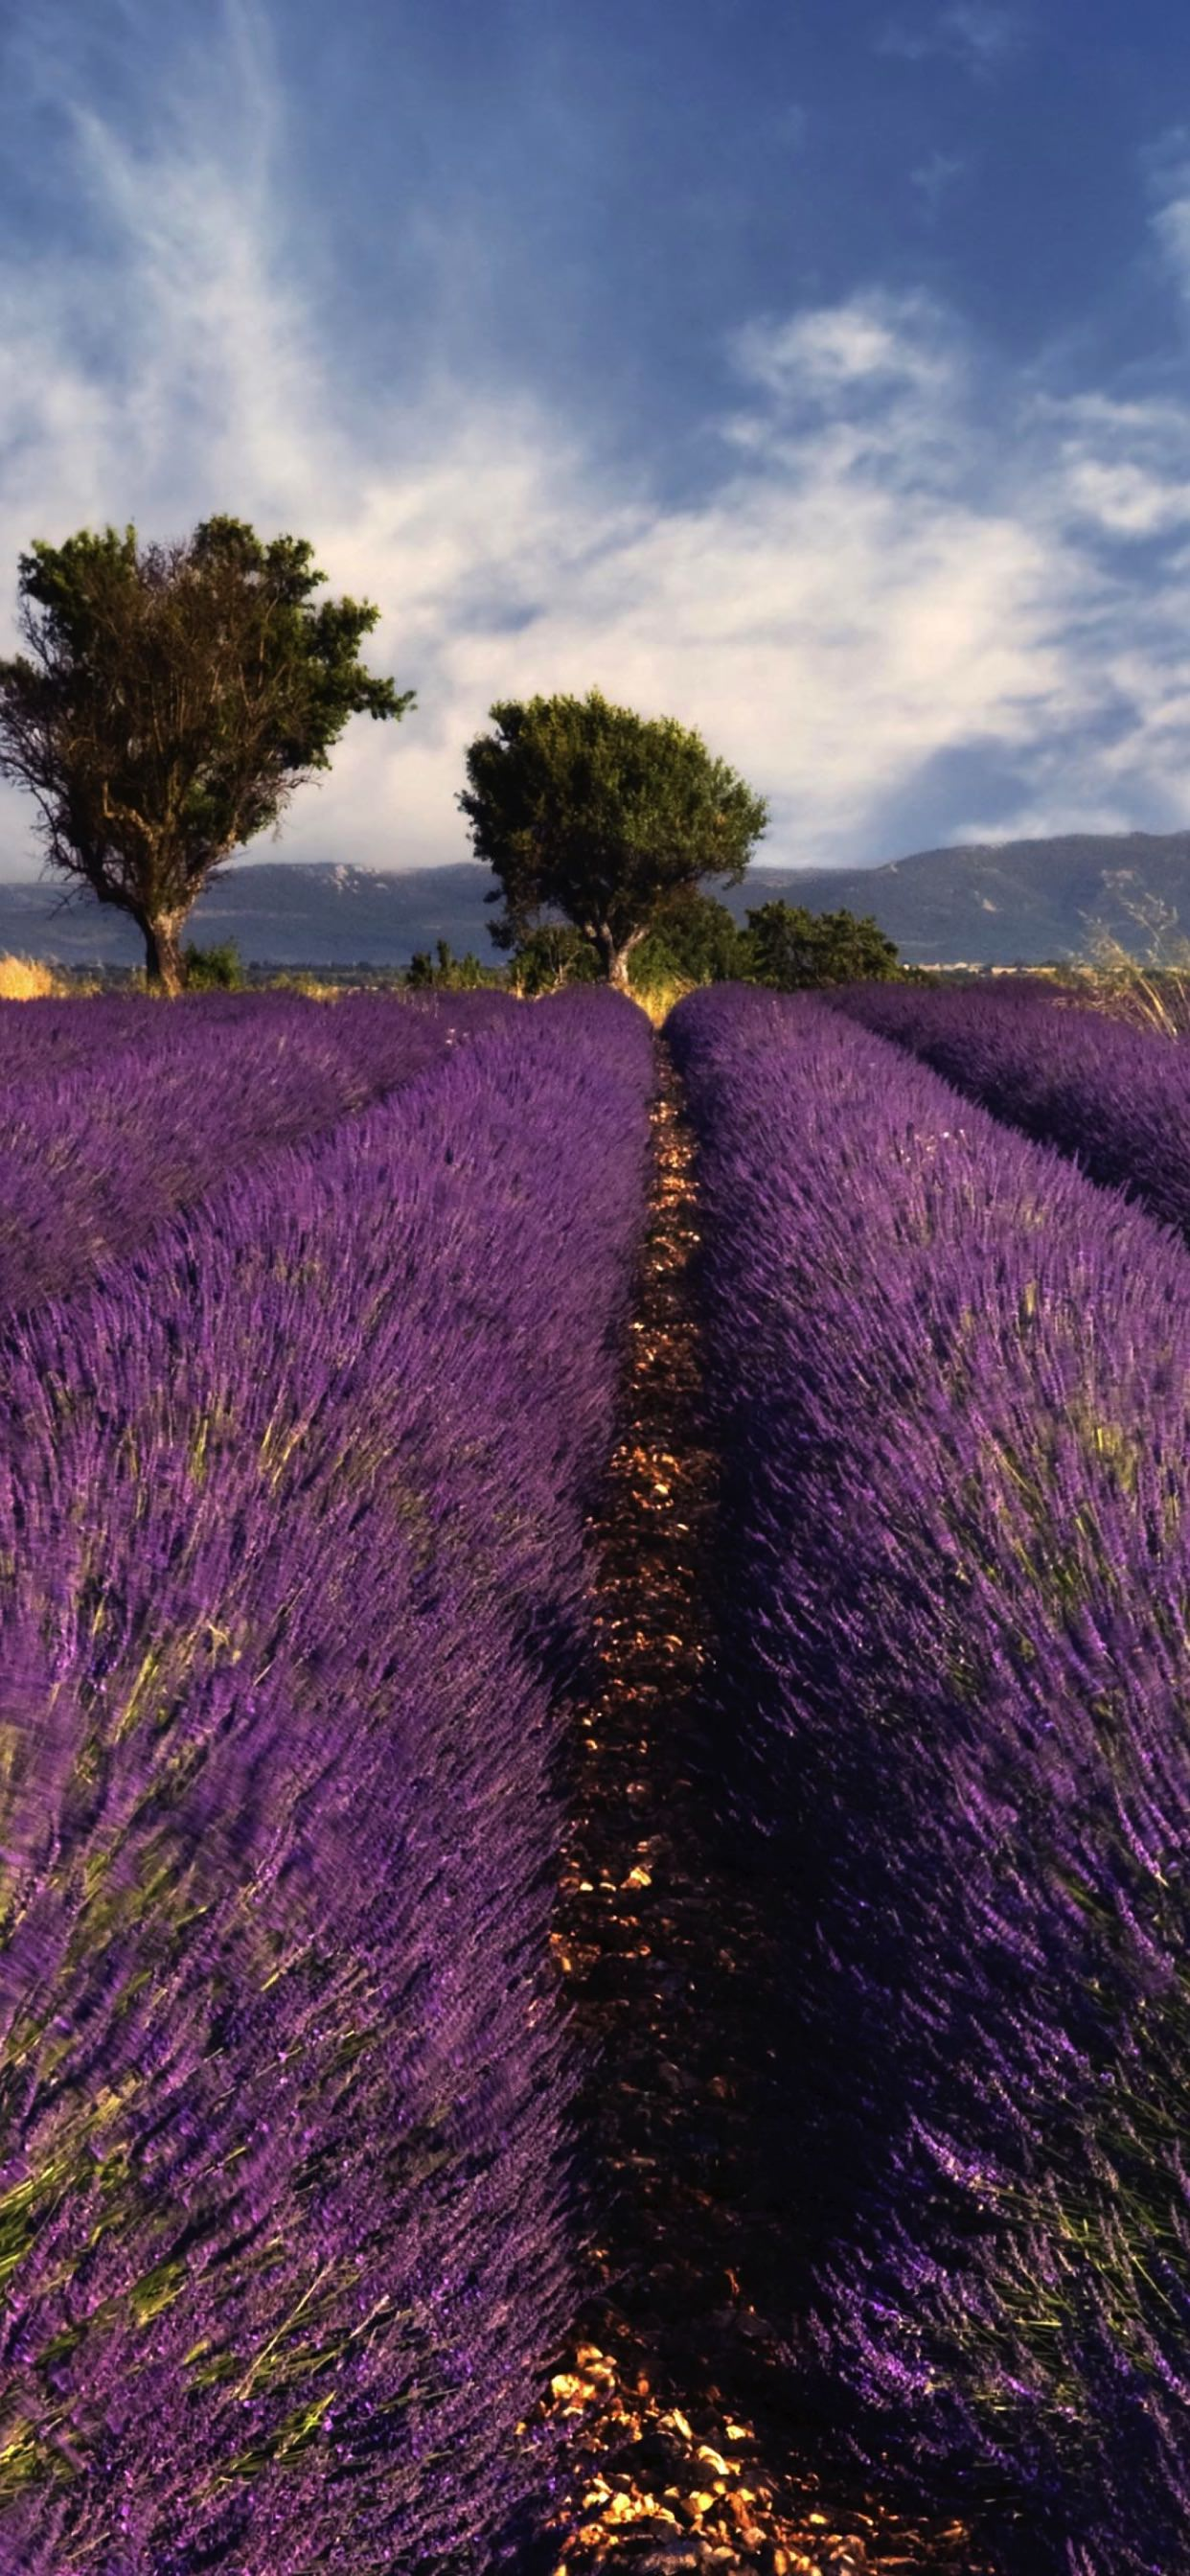 Lavender Flower Landscape Wallpaper Sc Iphone Xs Max